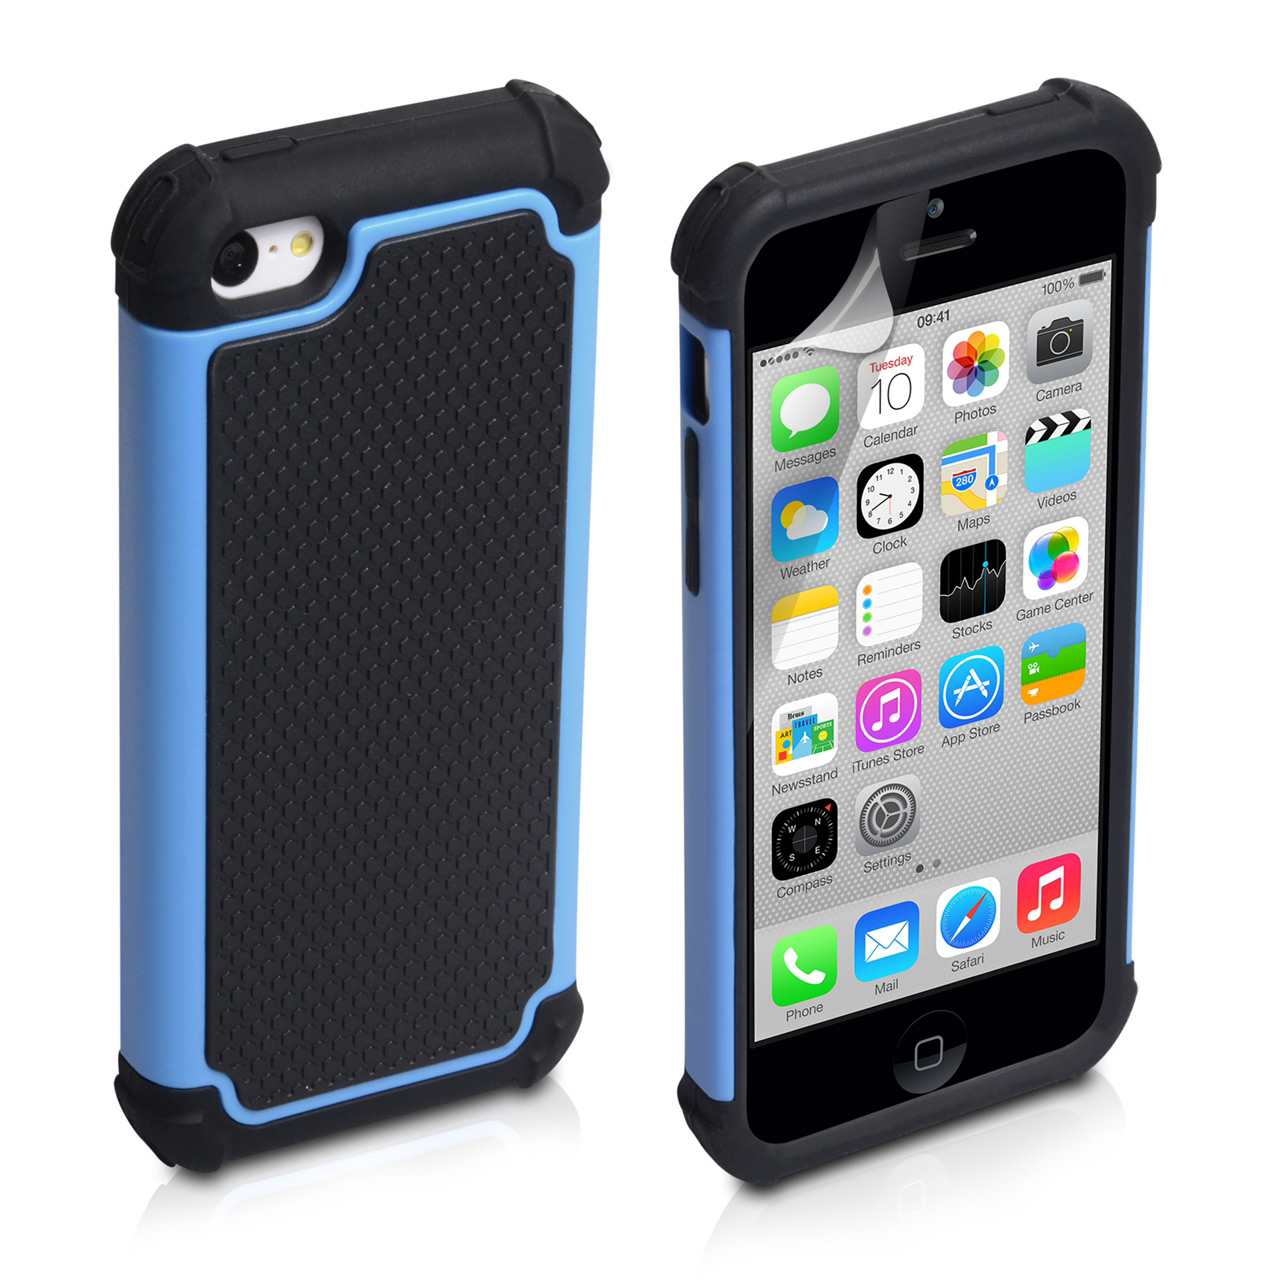 YouSave Accessories iPhone 5C Grip Combo Case - Blue